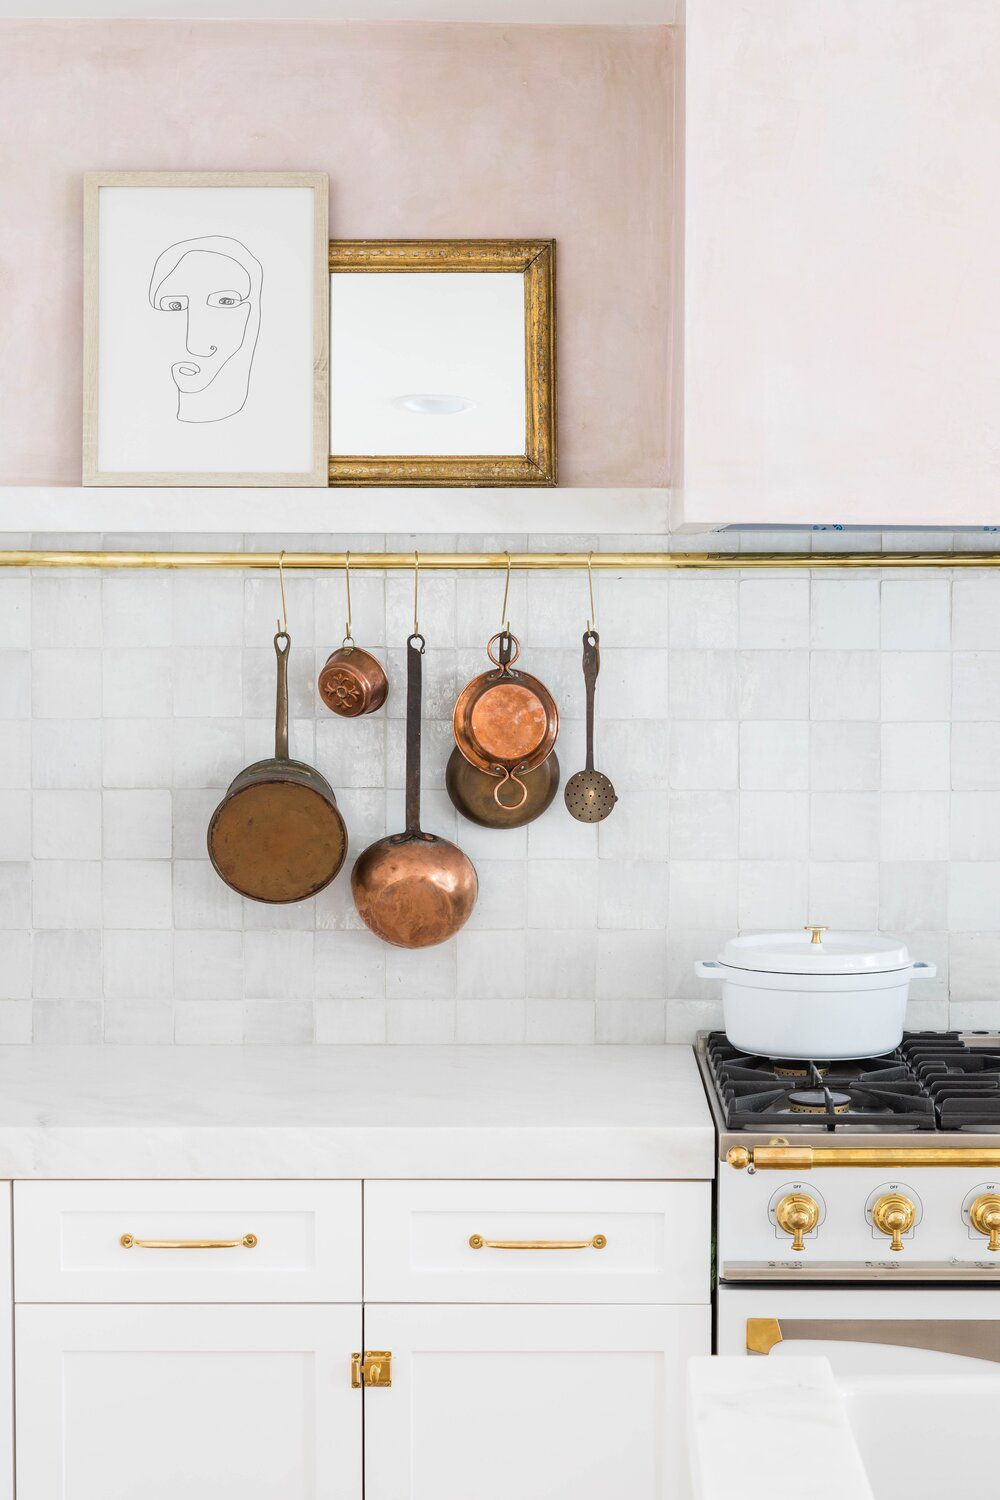 A pink kitchen lined with copper pots and pans